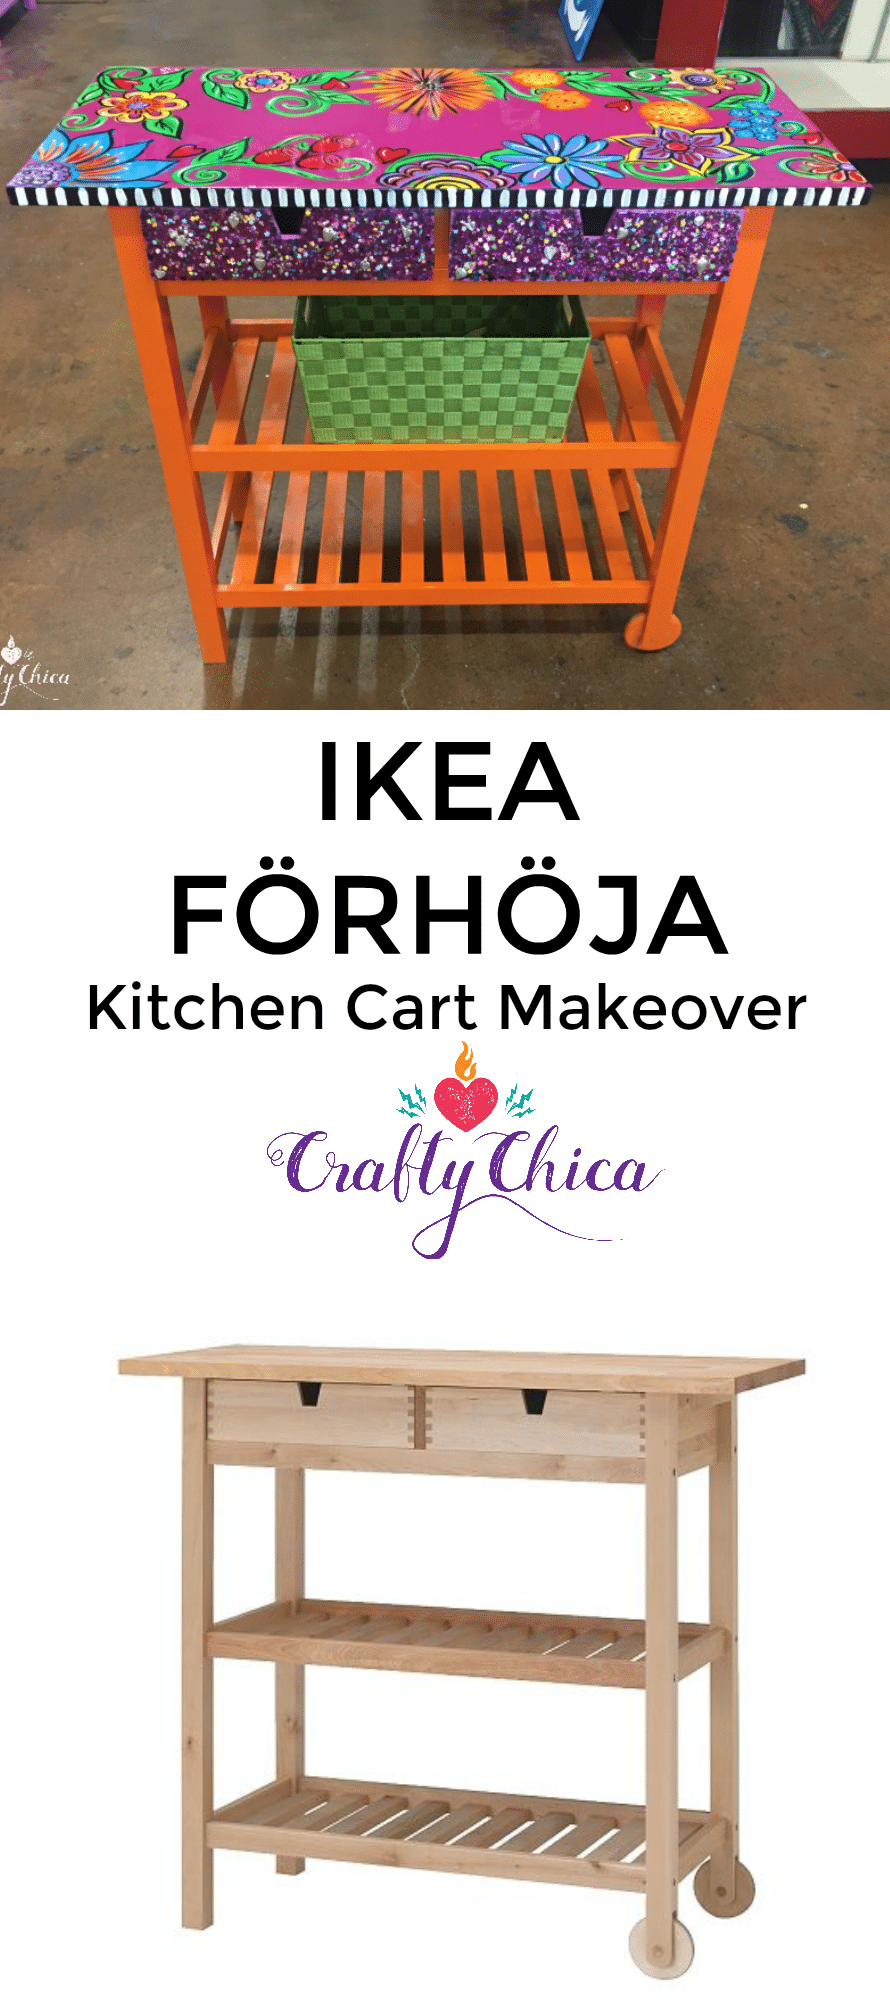 Ikea kitchen cart makeover